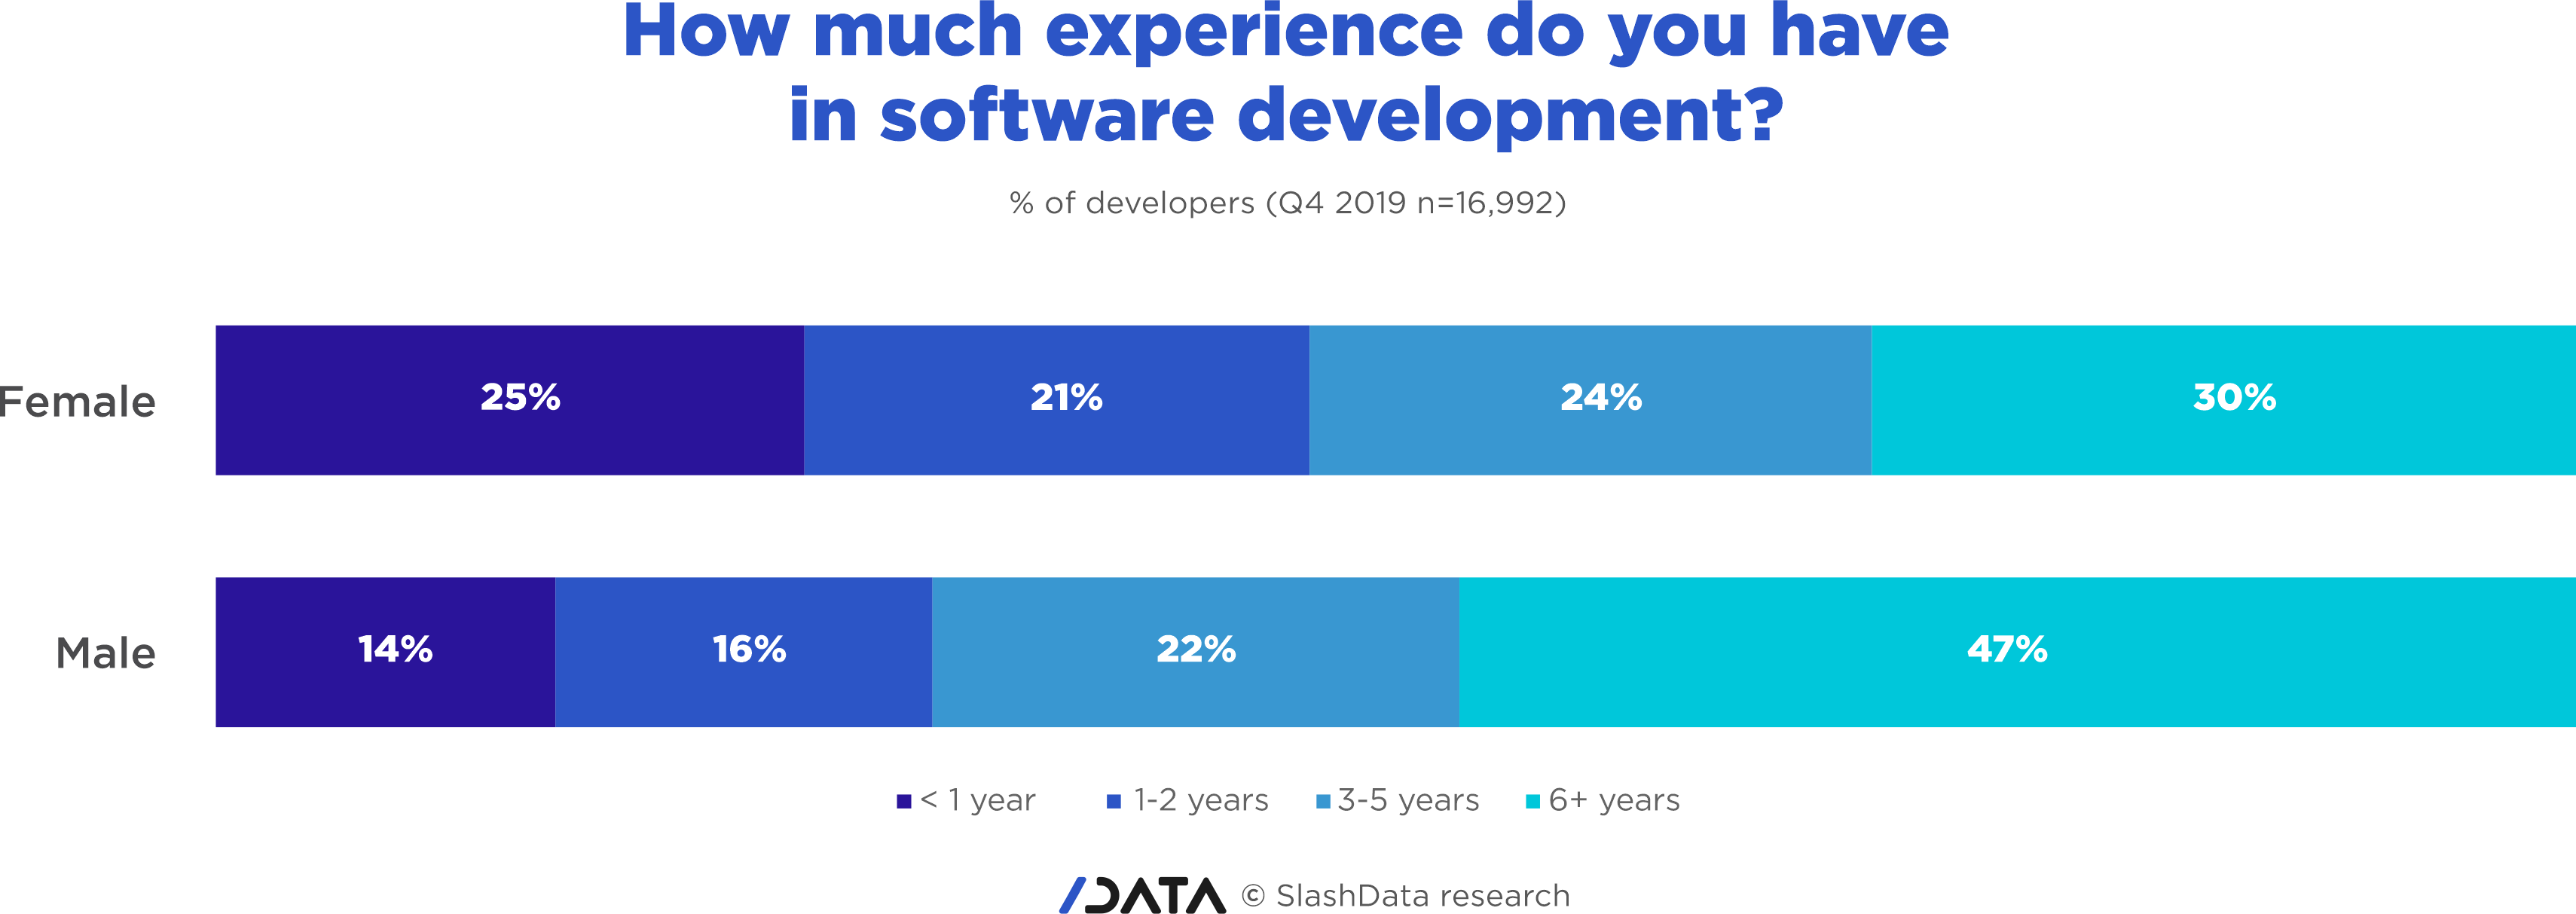 Gender gap - how much experience do you have in software development?